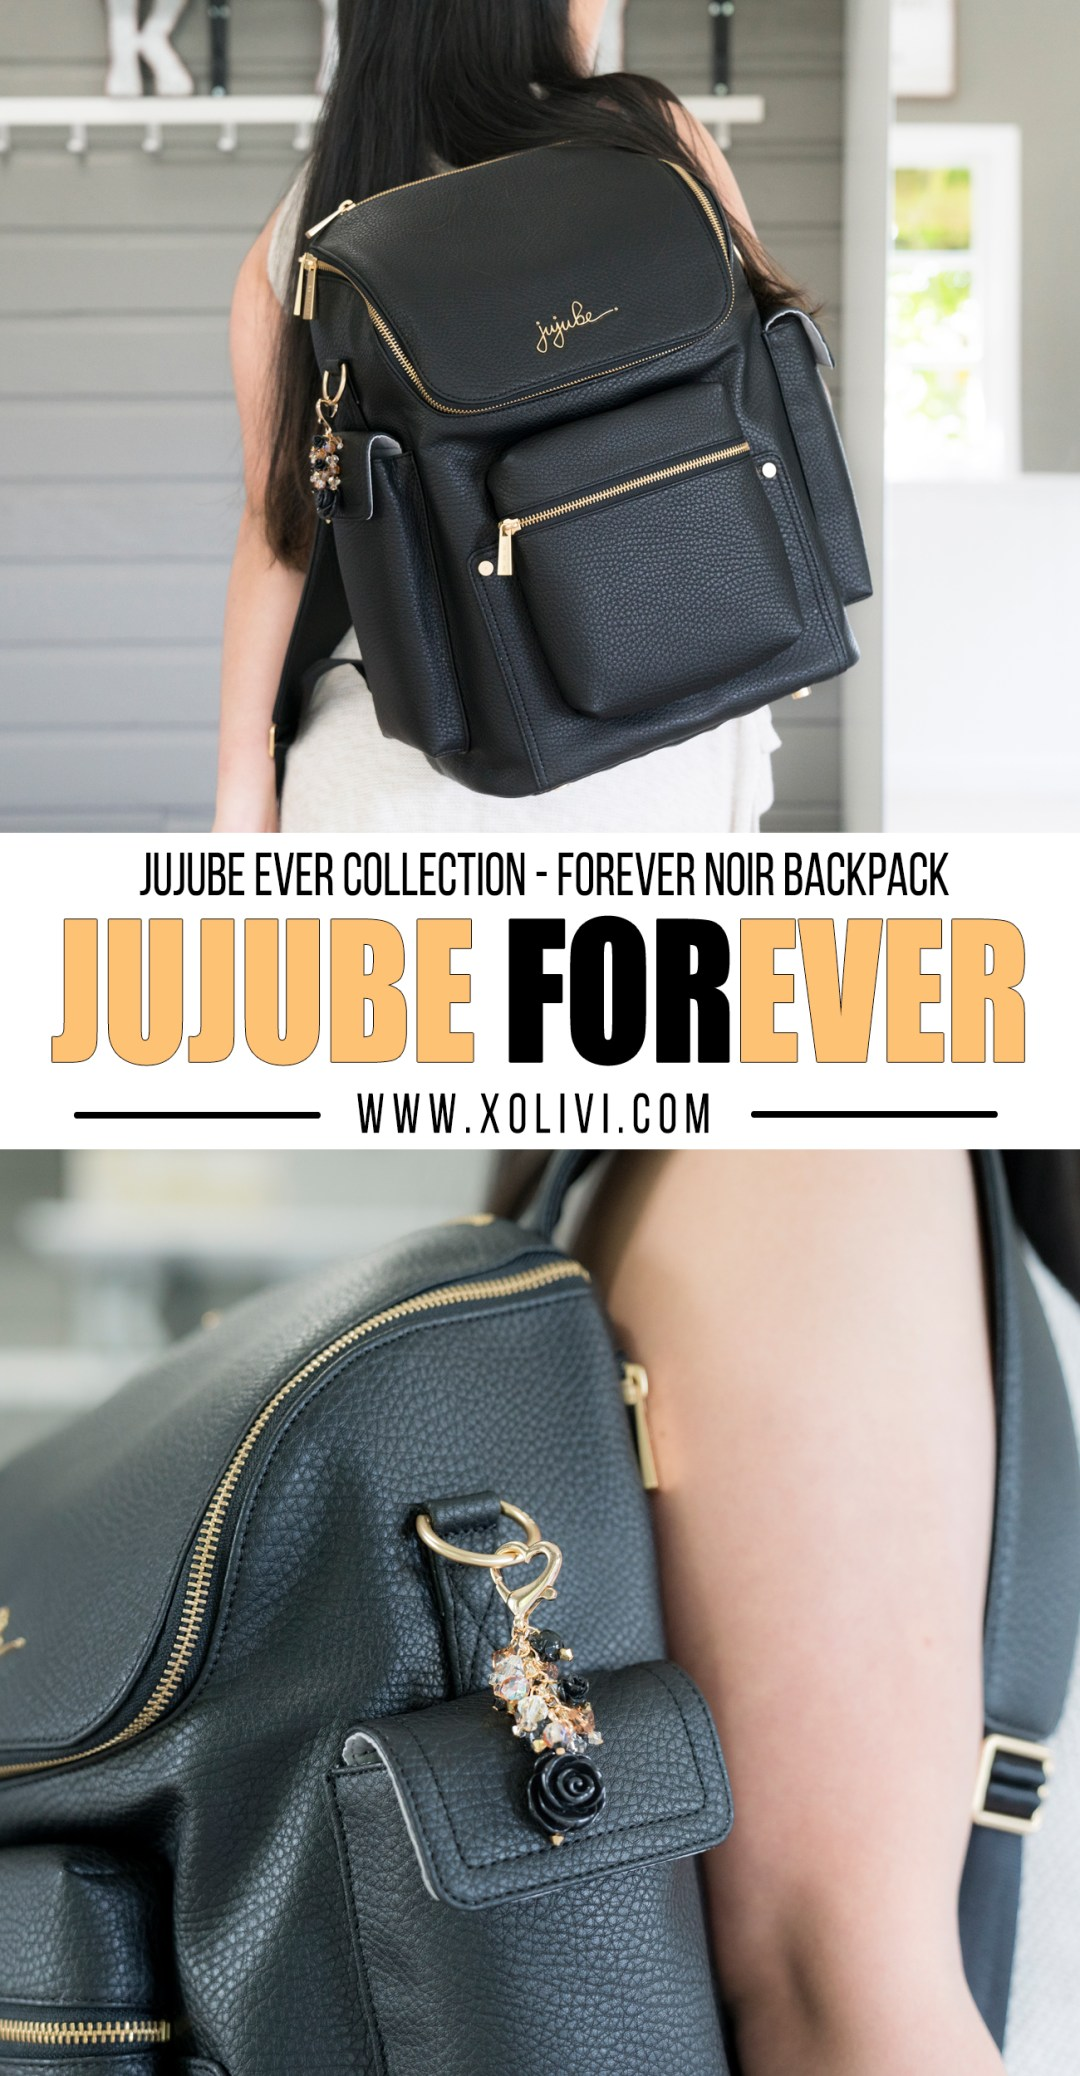 JUJUBE ever collection forever backpack in noir fobs by andrea